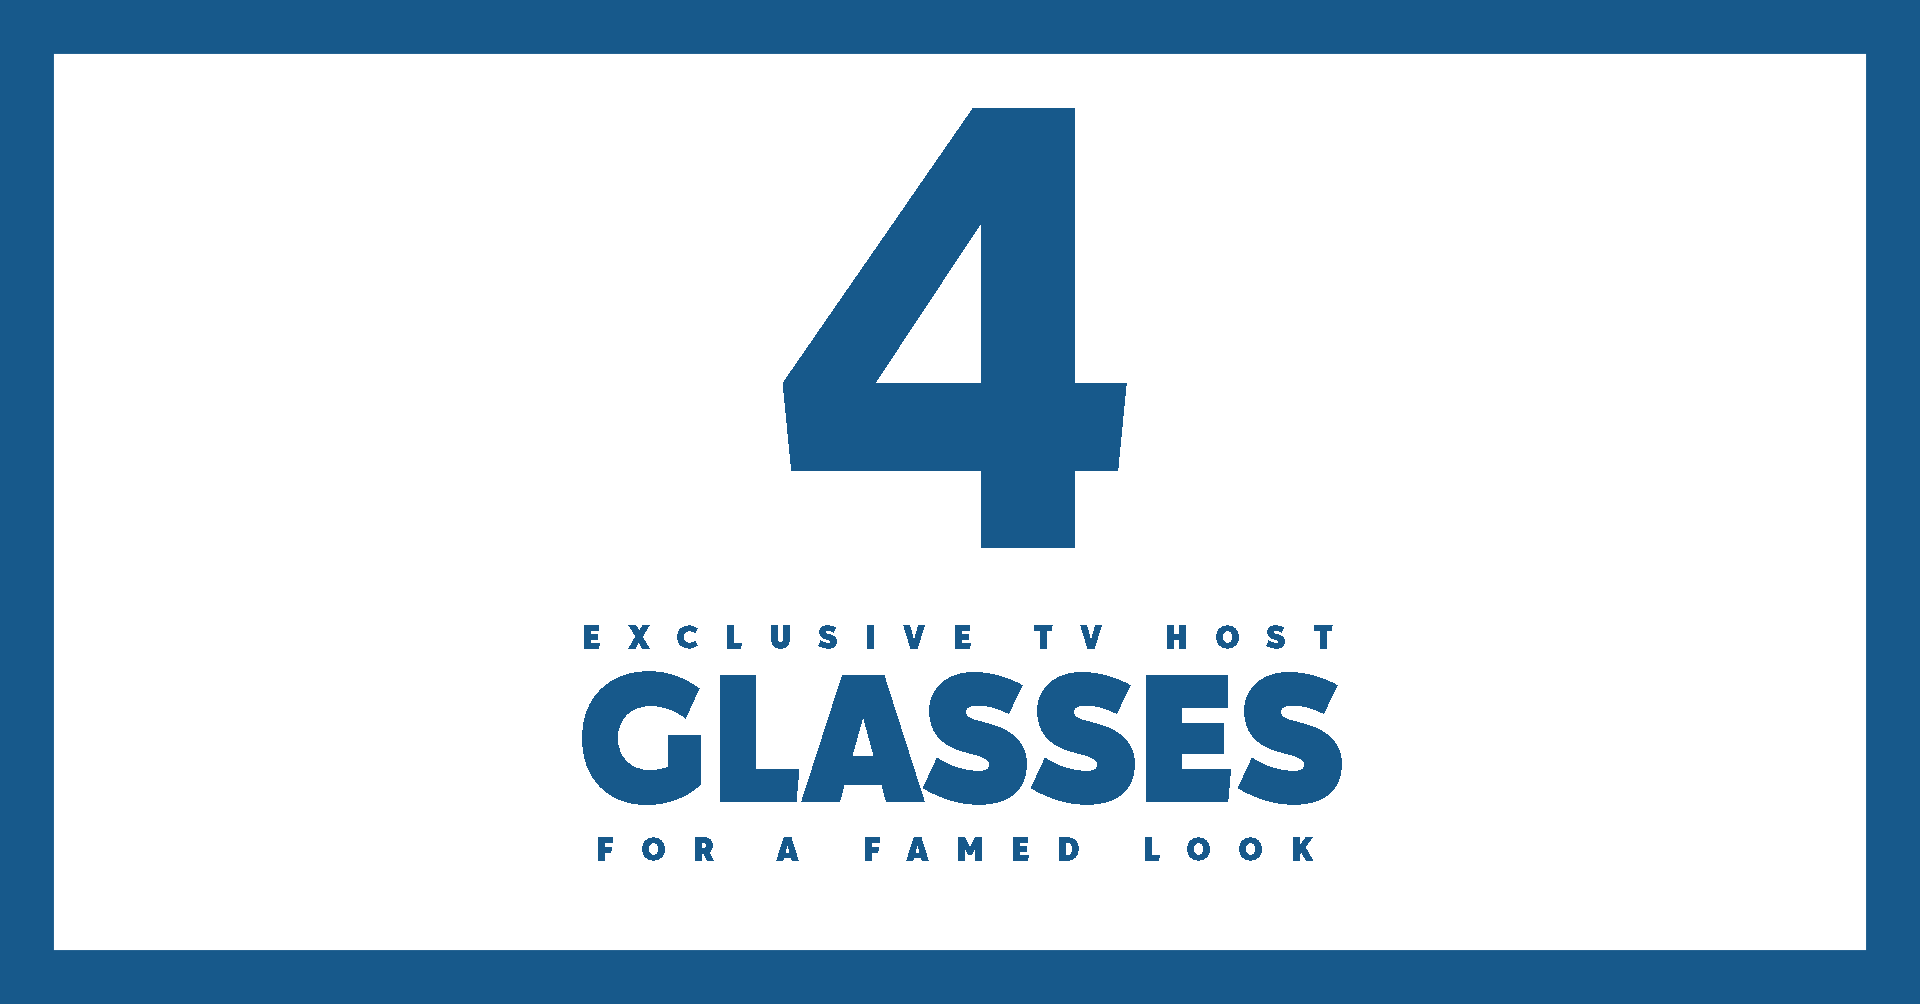 7) 4 EXCLUSIVE TV HOST GLASSES FOR A FAMED LOOK